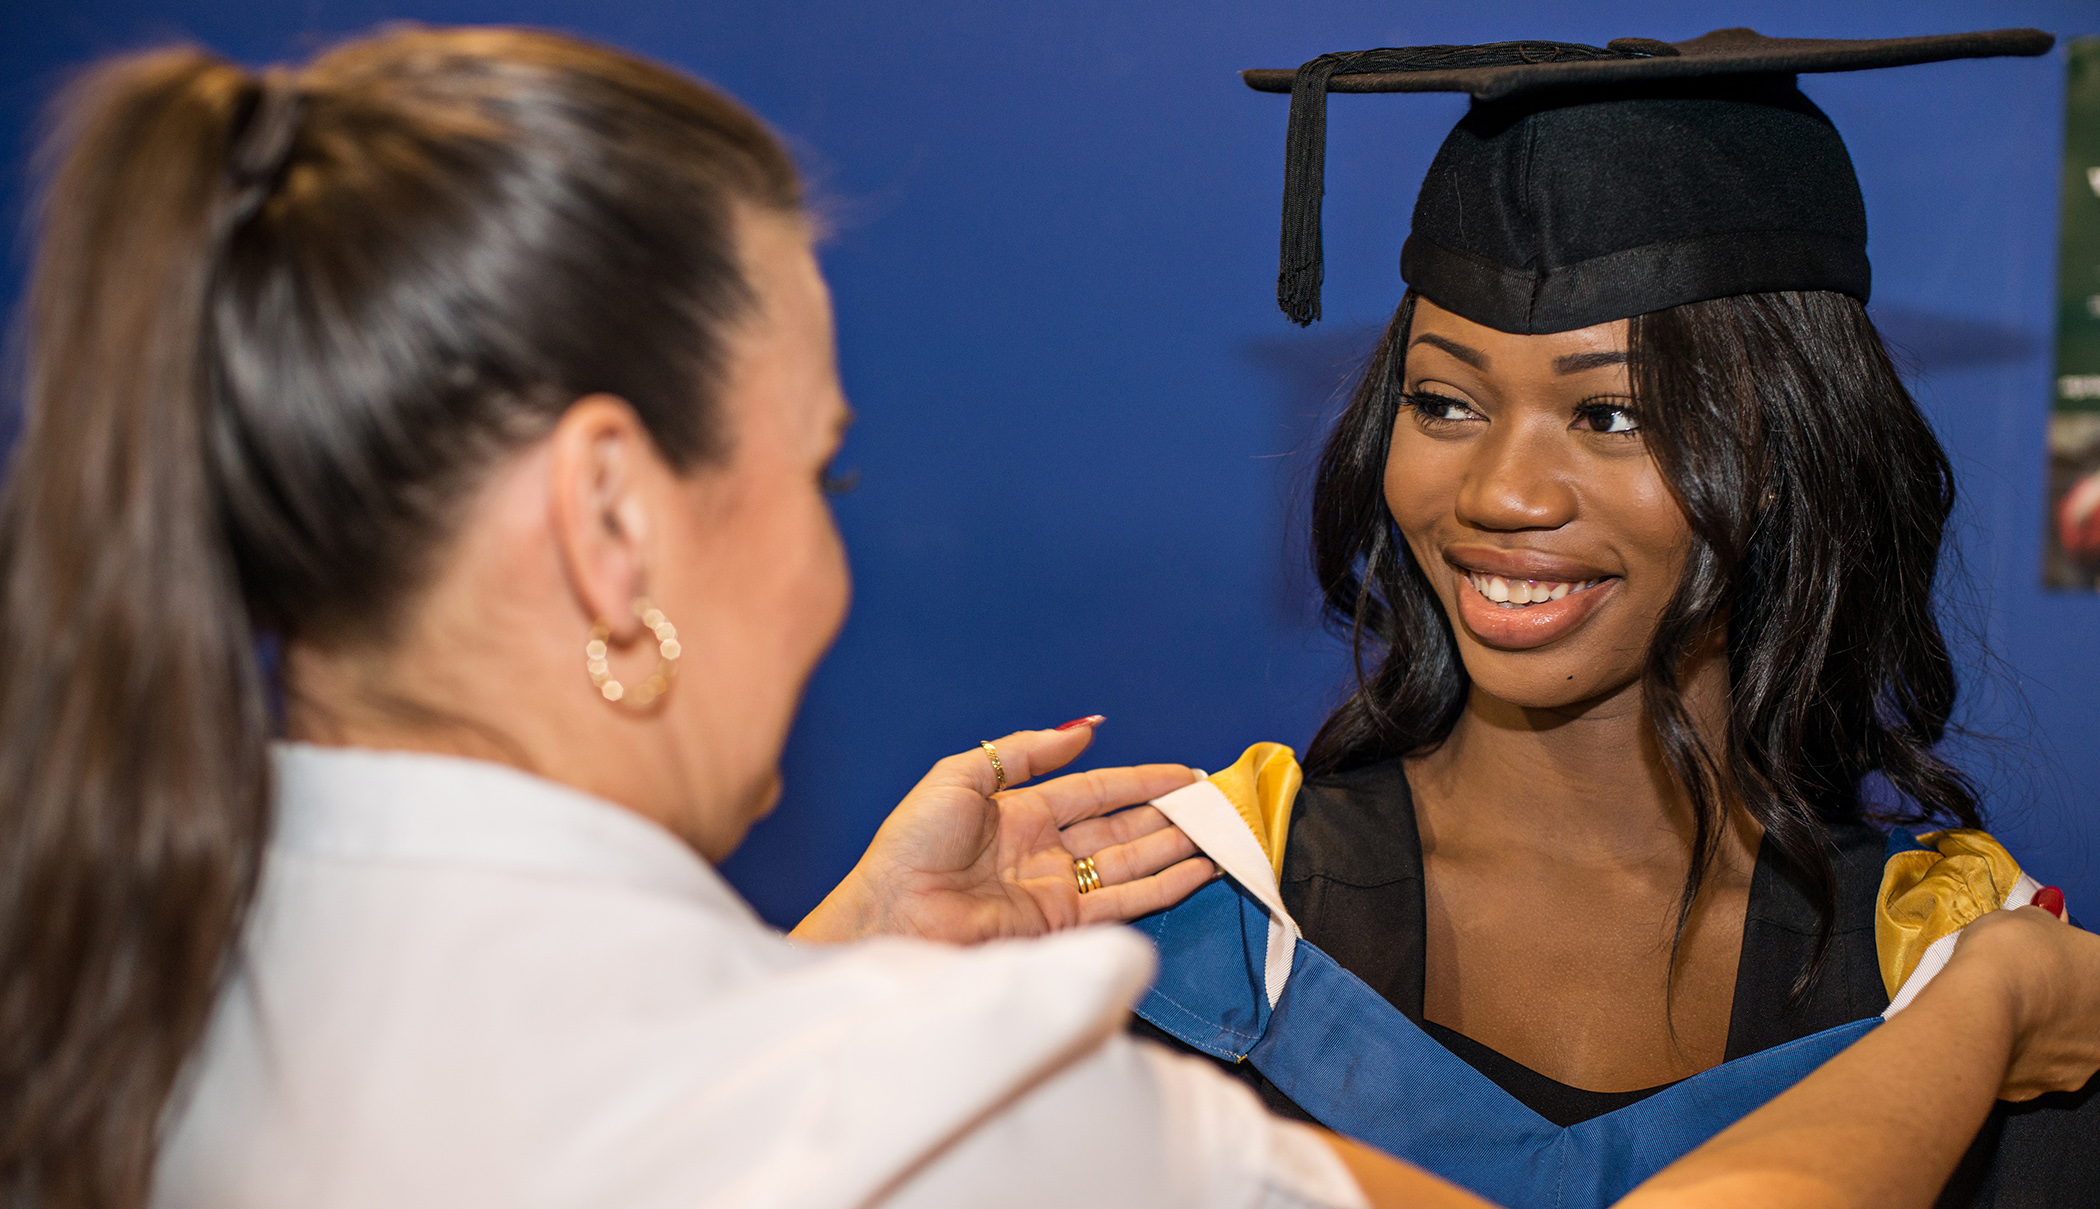 Hiring your gown   Bournemouth University